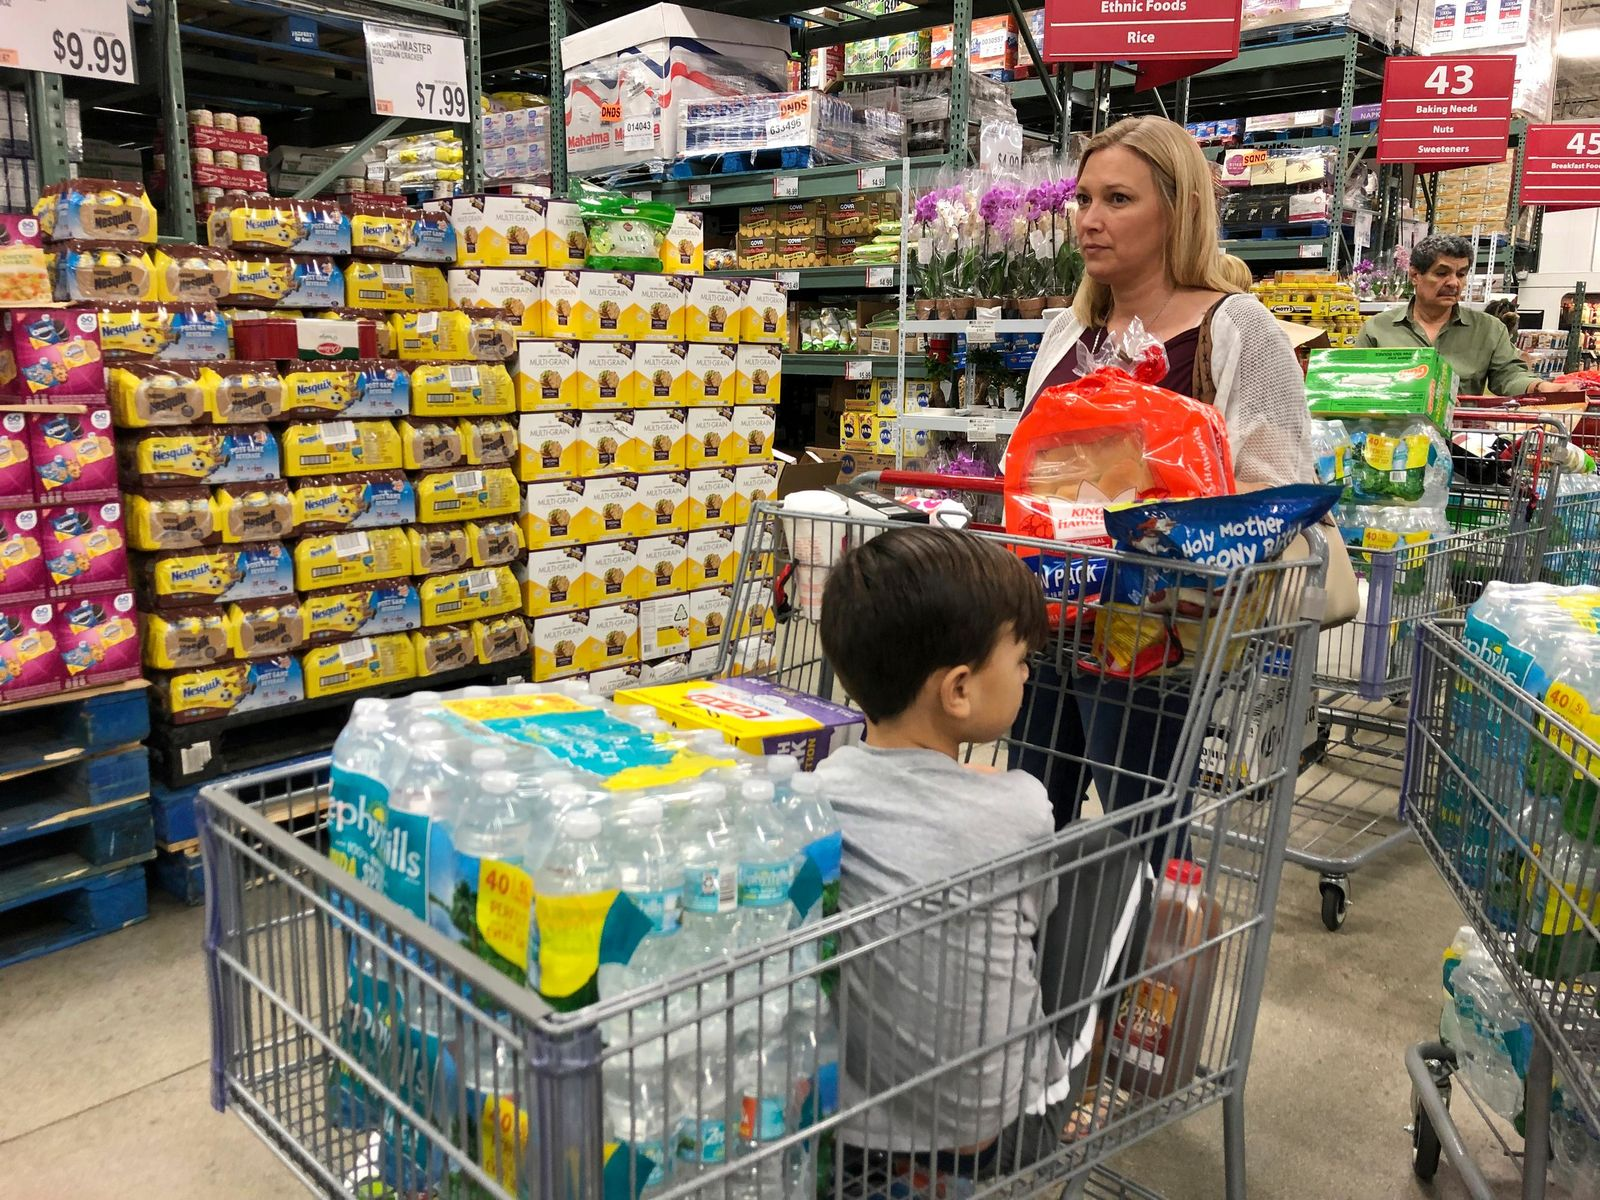 "Tiffany Miranda of Miami Springs stands in line with supplies at a BJ's Wholesale Club Thursday, Aug. 29, 2019, in Hialeah, Fla. Miranda has been through five hurricanes and has never evacuated. She says, ""you just have to be prepared.""The U.S. National Hurricane Center says Dorian could hit the Florida coast over the weekend as a major hurricane. (AP Photo/Marcus Lim)"